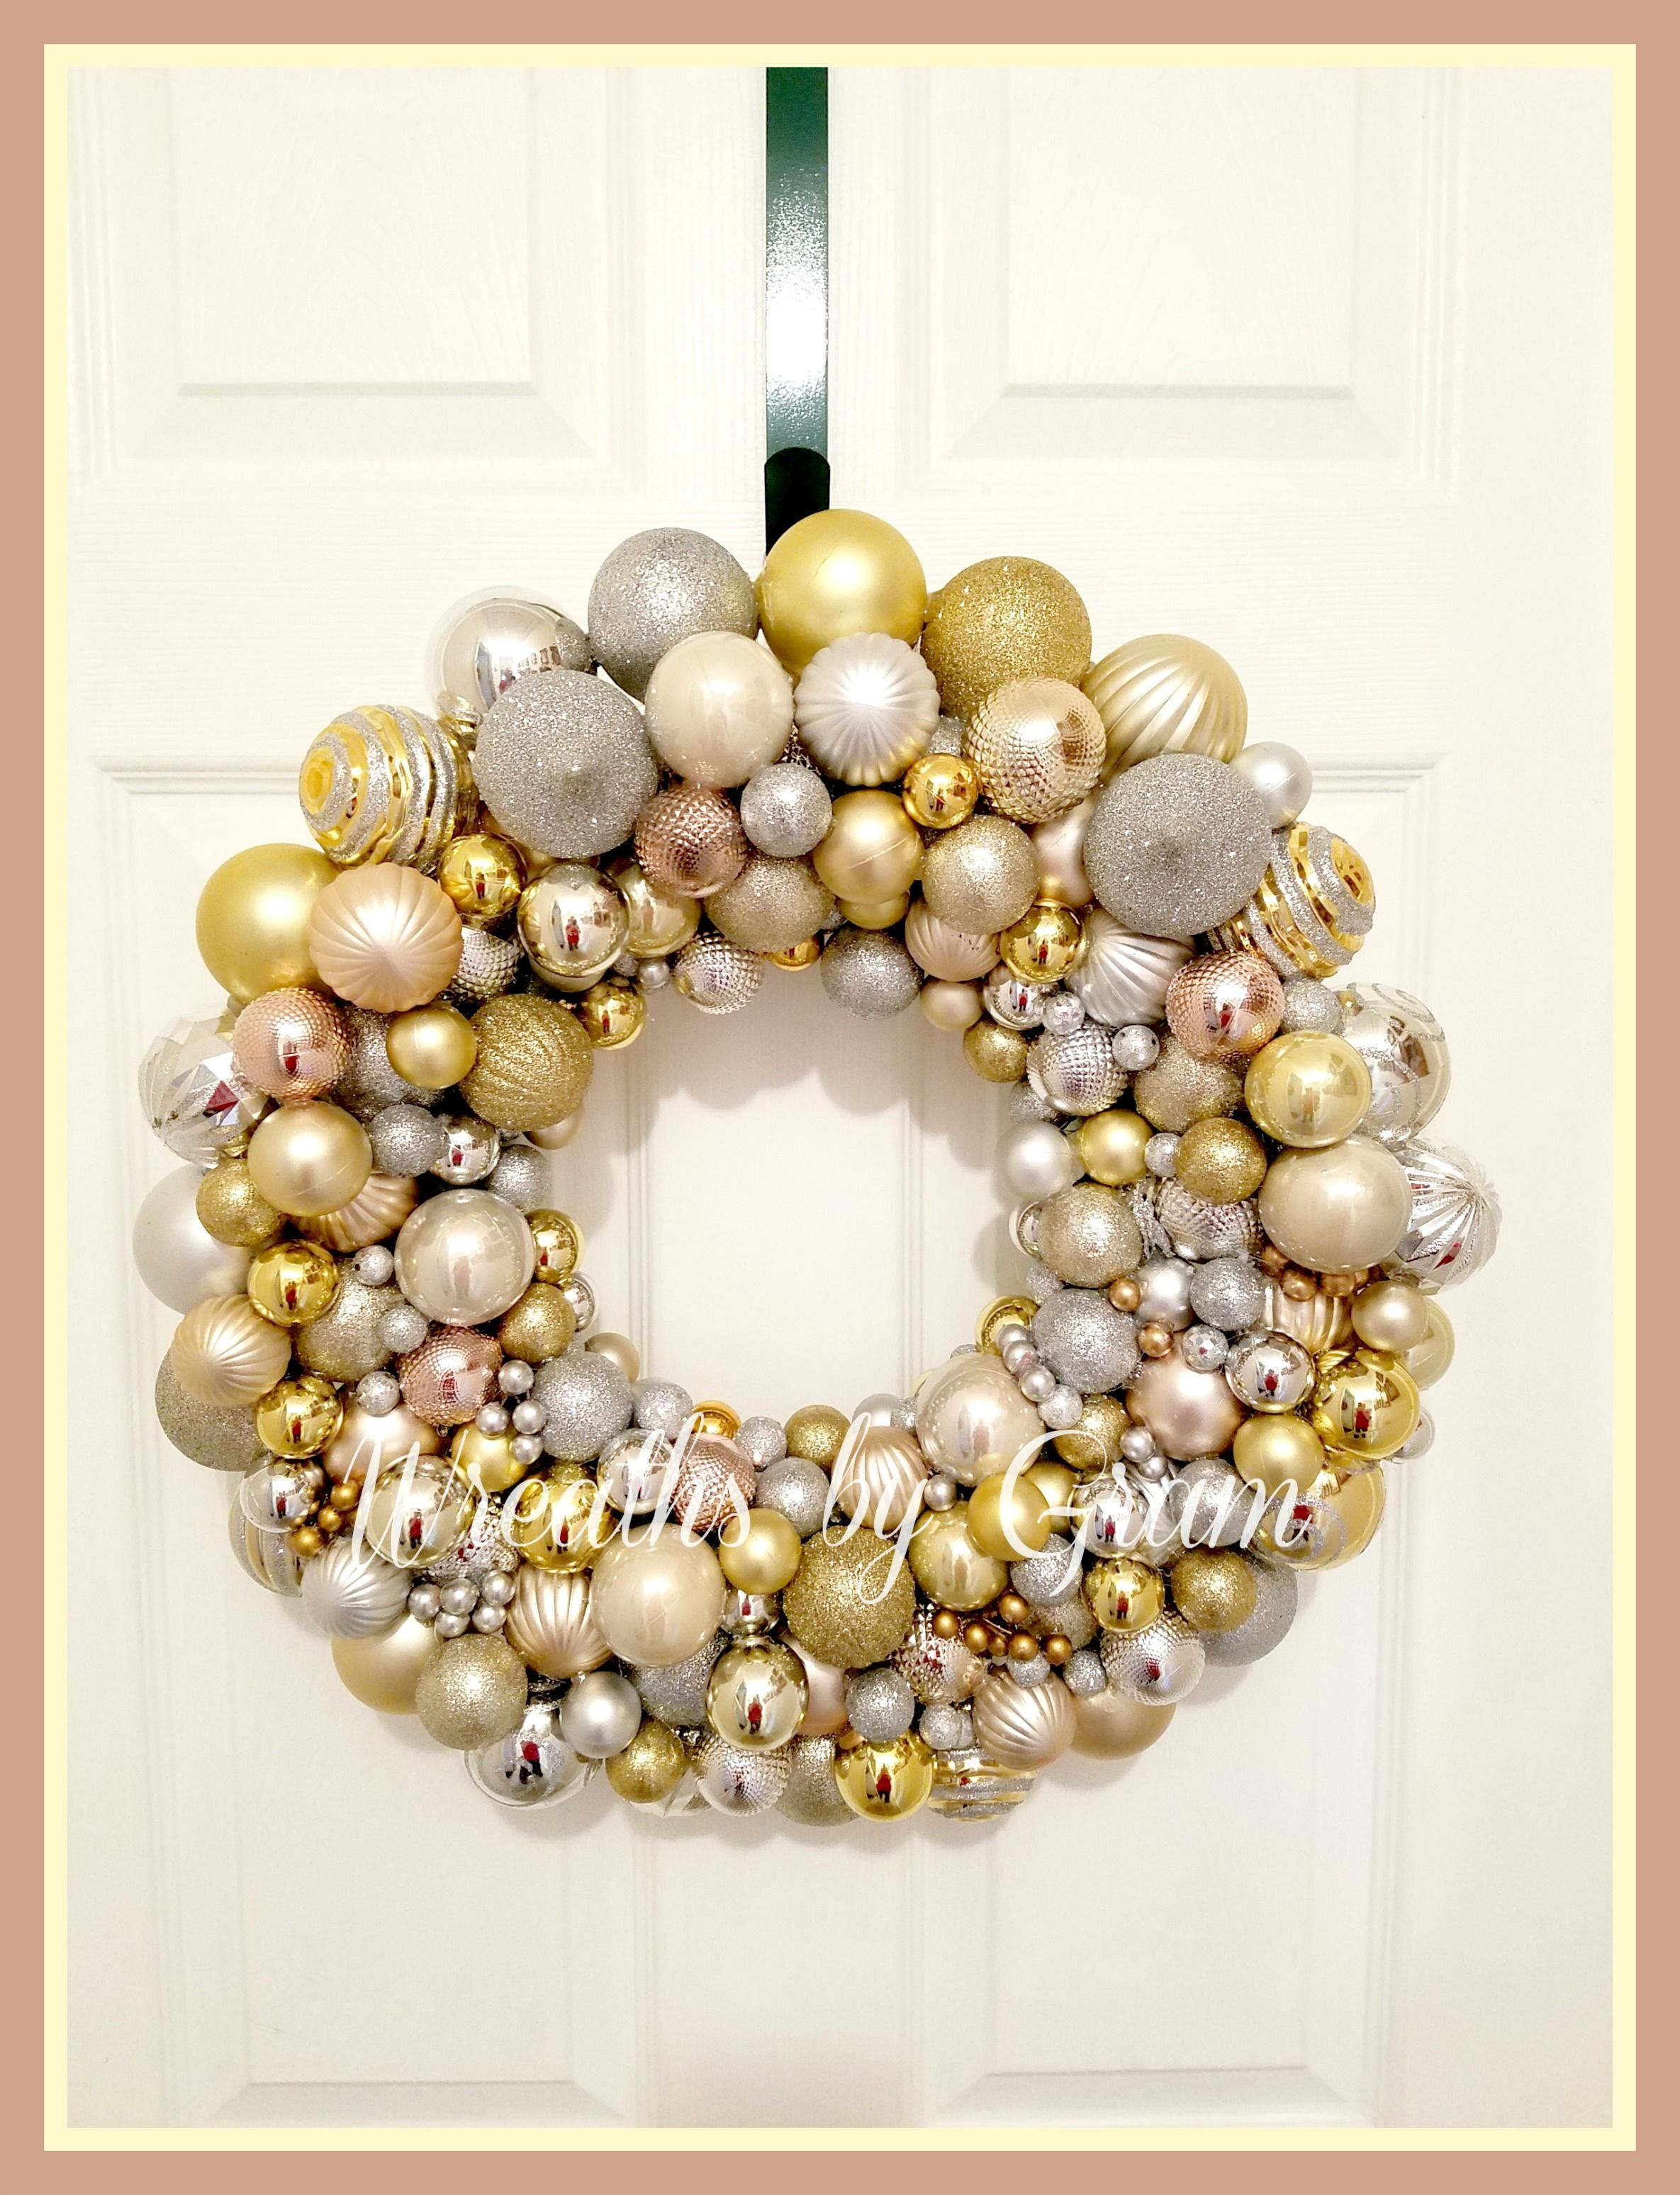 Silver And Gold Ornament Wreath Holiday Decor Christmas Etsy Gold Ornament Wreath Ornament Wreath Christmas Wreaths